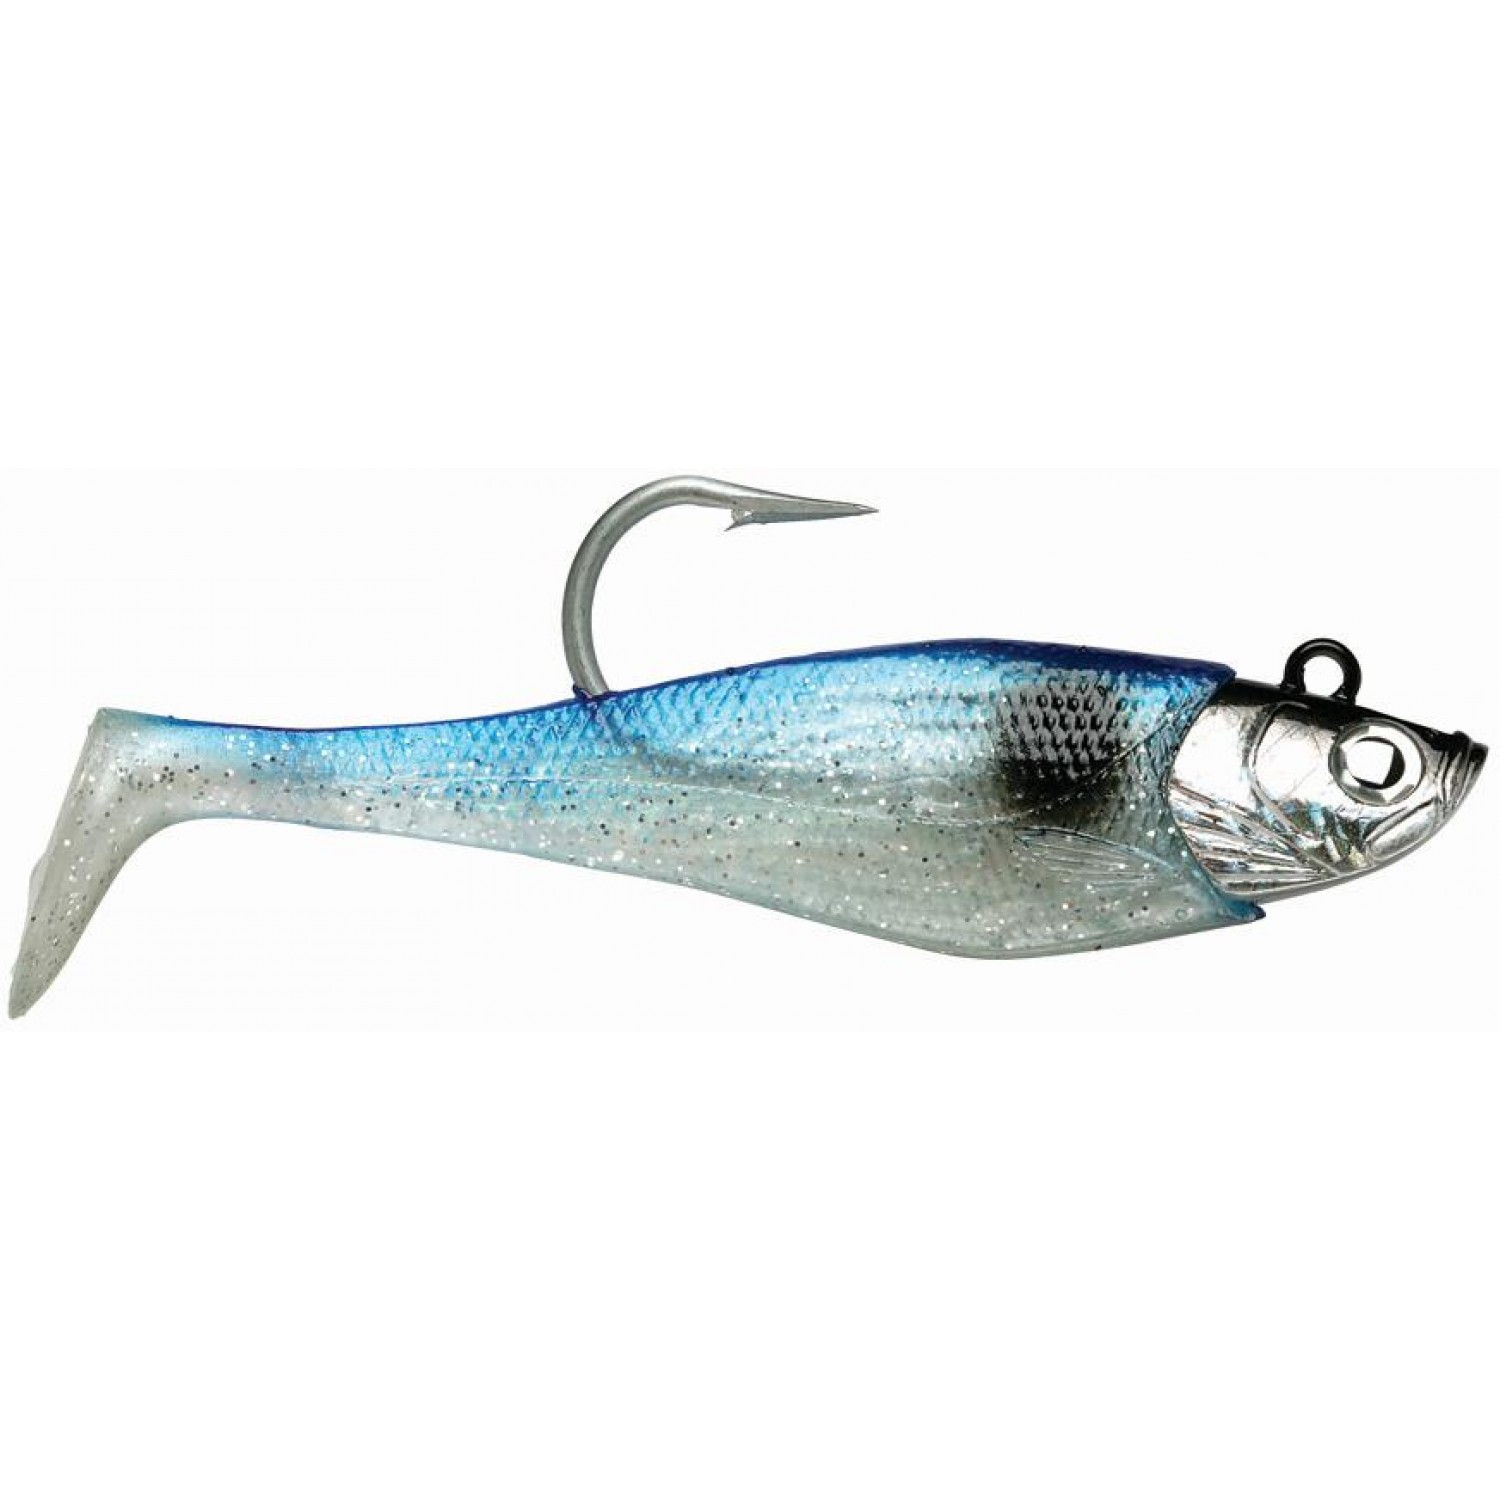 2 SOFT BODIES 1 HEAD Storm WildEye GIANT Jigging Shad Fishing Three Sizes